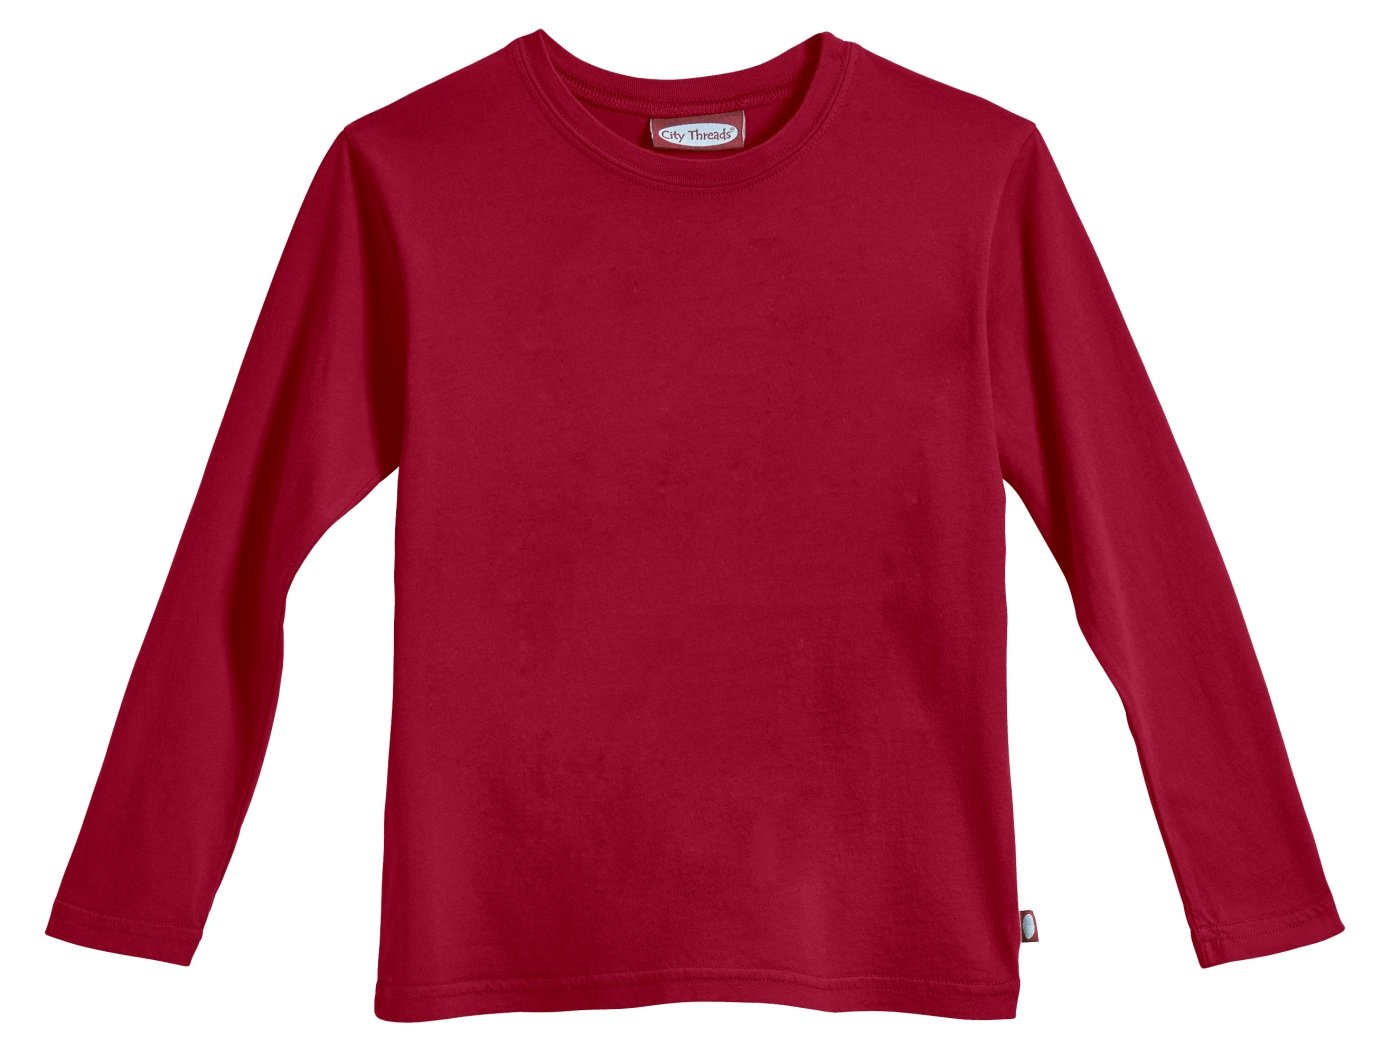 City Threads Boys' Long Sleeve Tee Tshirt in 100% Soft Cotton - Base Layer - Made in USA